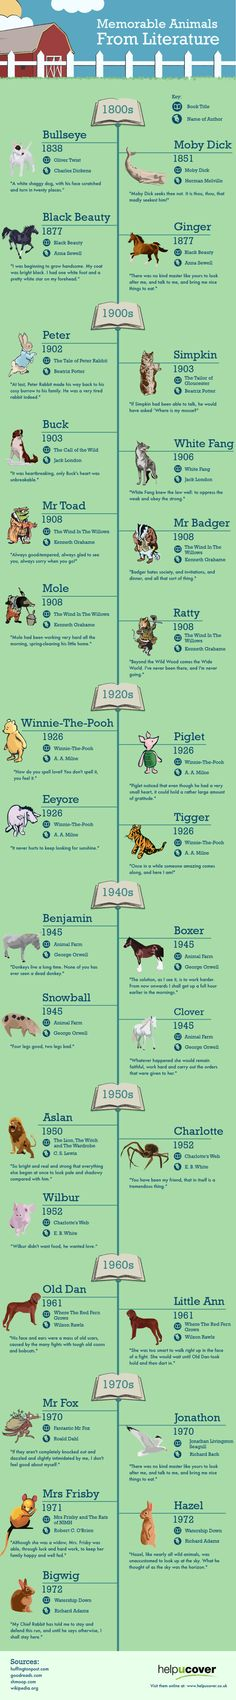 What's your favorite animal characters from #books?